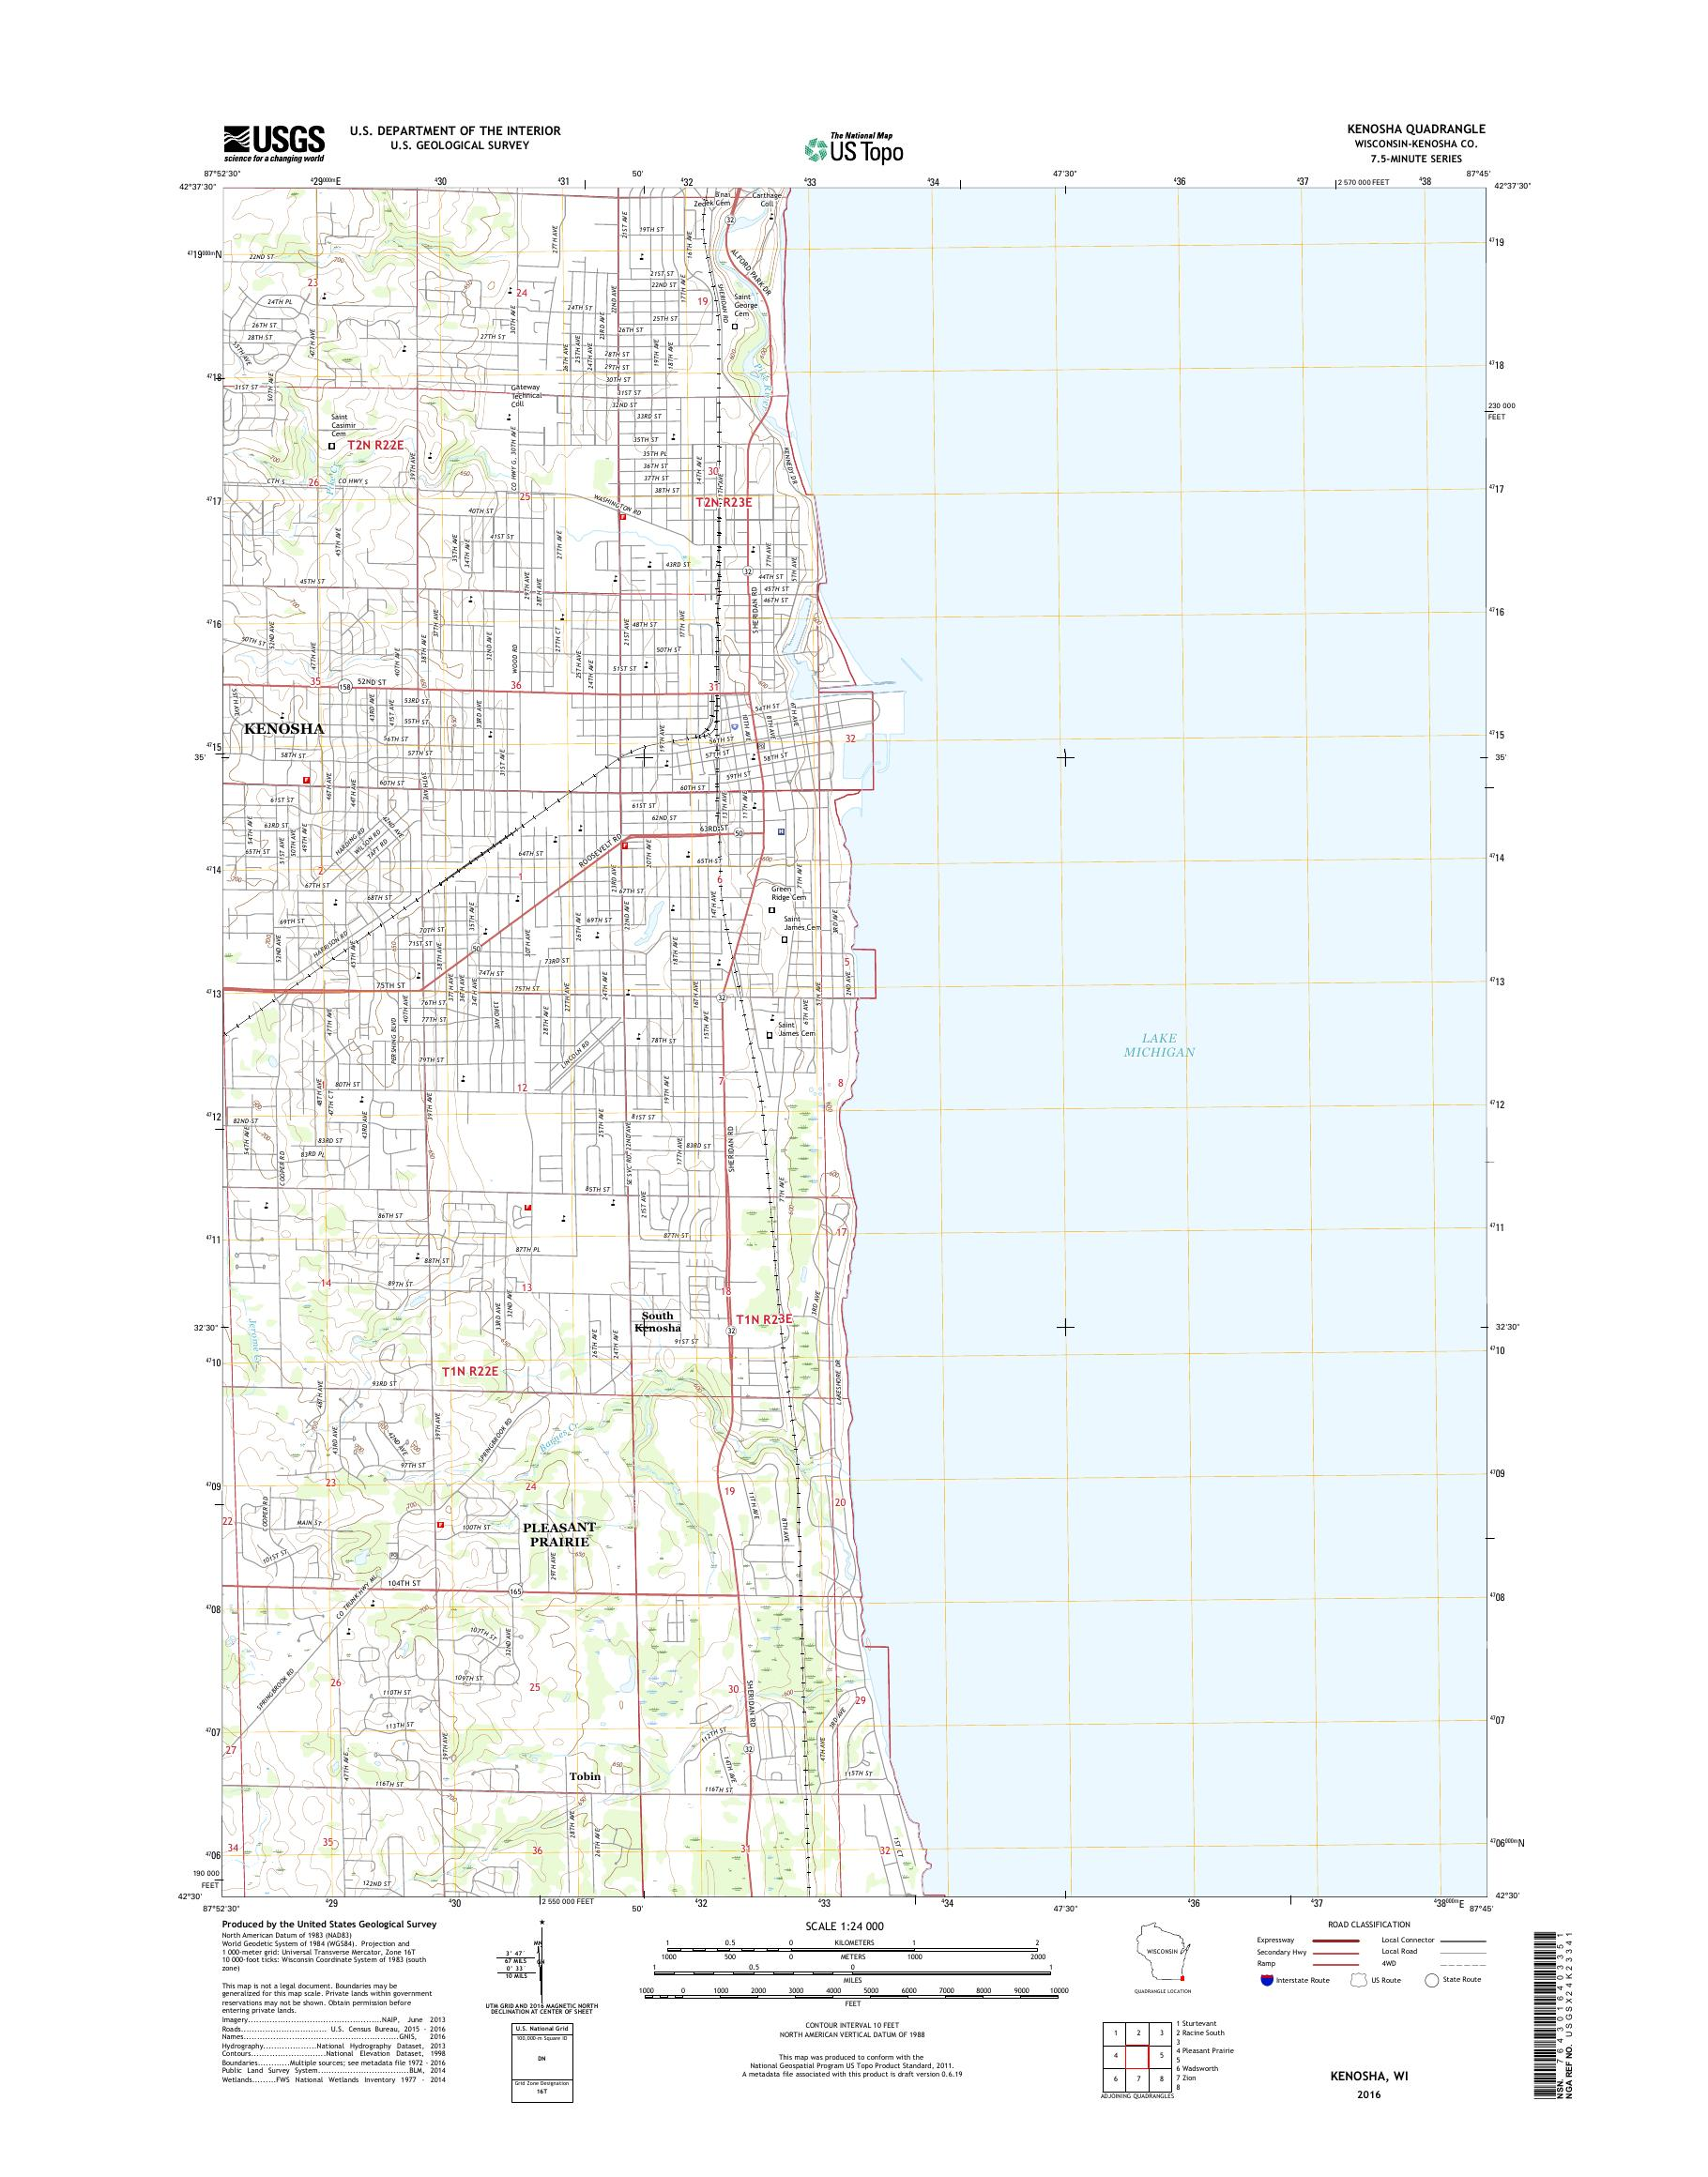 MyTopo Kenosha, Wisconsin USGS Quad Topo Map on attleboro massachusetts on map, ann arbor michigan on map, bozeman montana on map, kenosha cowi map, kenosha wi, kenosha county map, huntsville alabama on map, portsmouth virginia on map, southeast wisconsin map, fargo north dakota on map, wisconsin county map, trout lake wisconsin map, everett washington on map, kenosha wisc, terre haute indiana on map, city of kenosha wisconsin map,